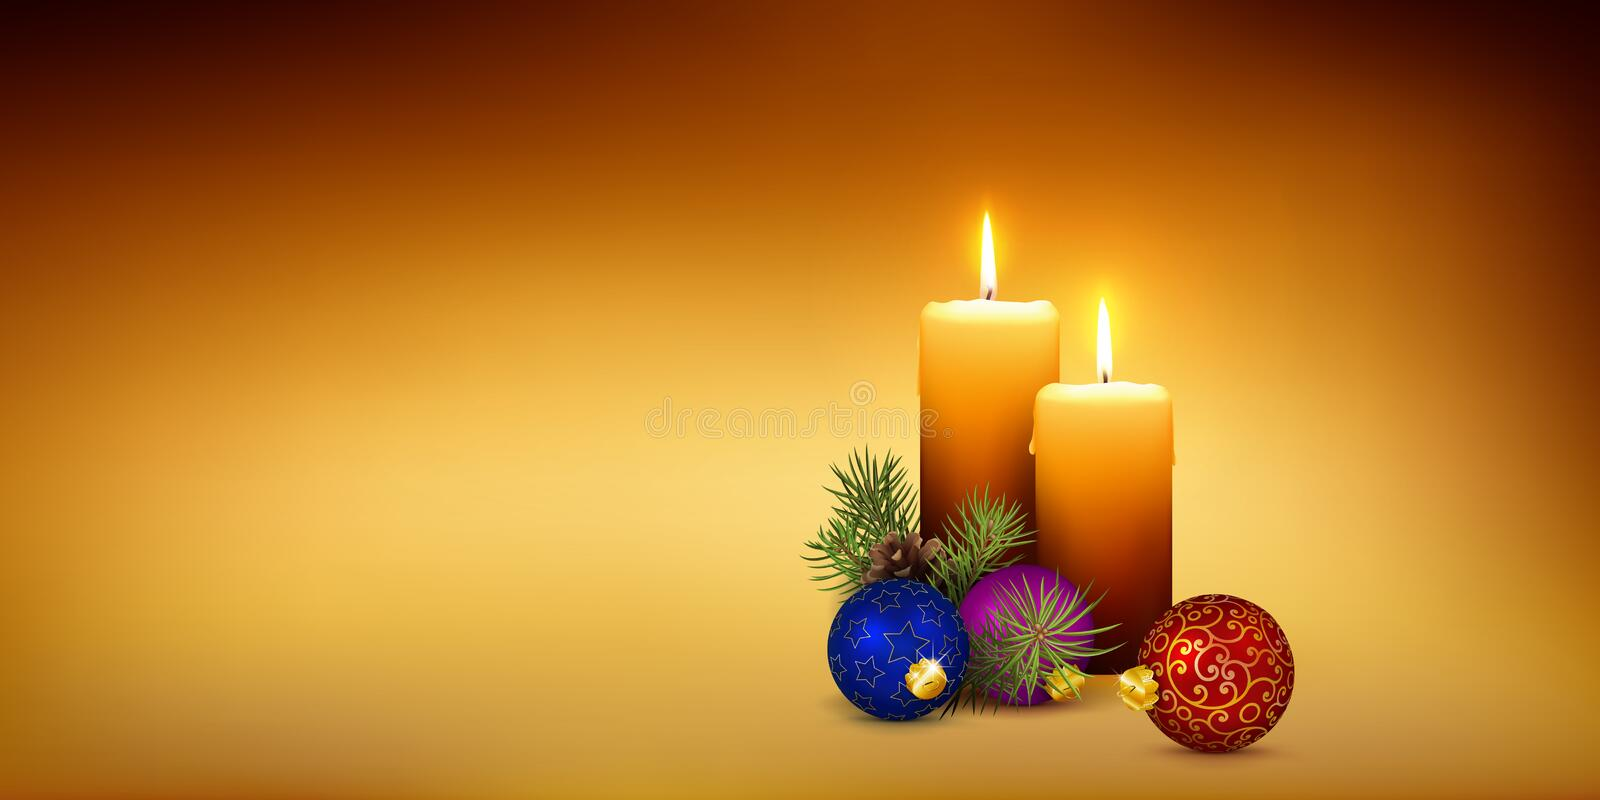 Two Orange Candles on Golden Brown Background - Panorama royalty free stock images